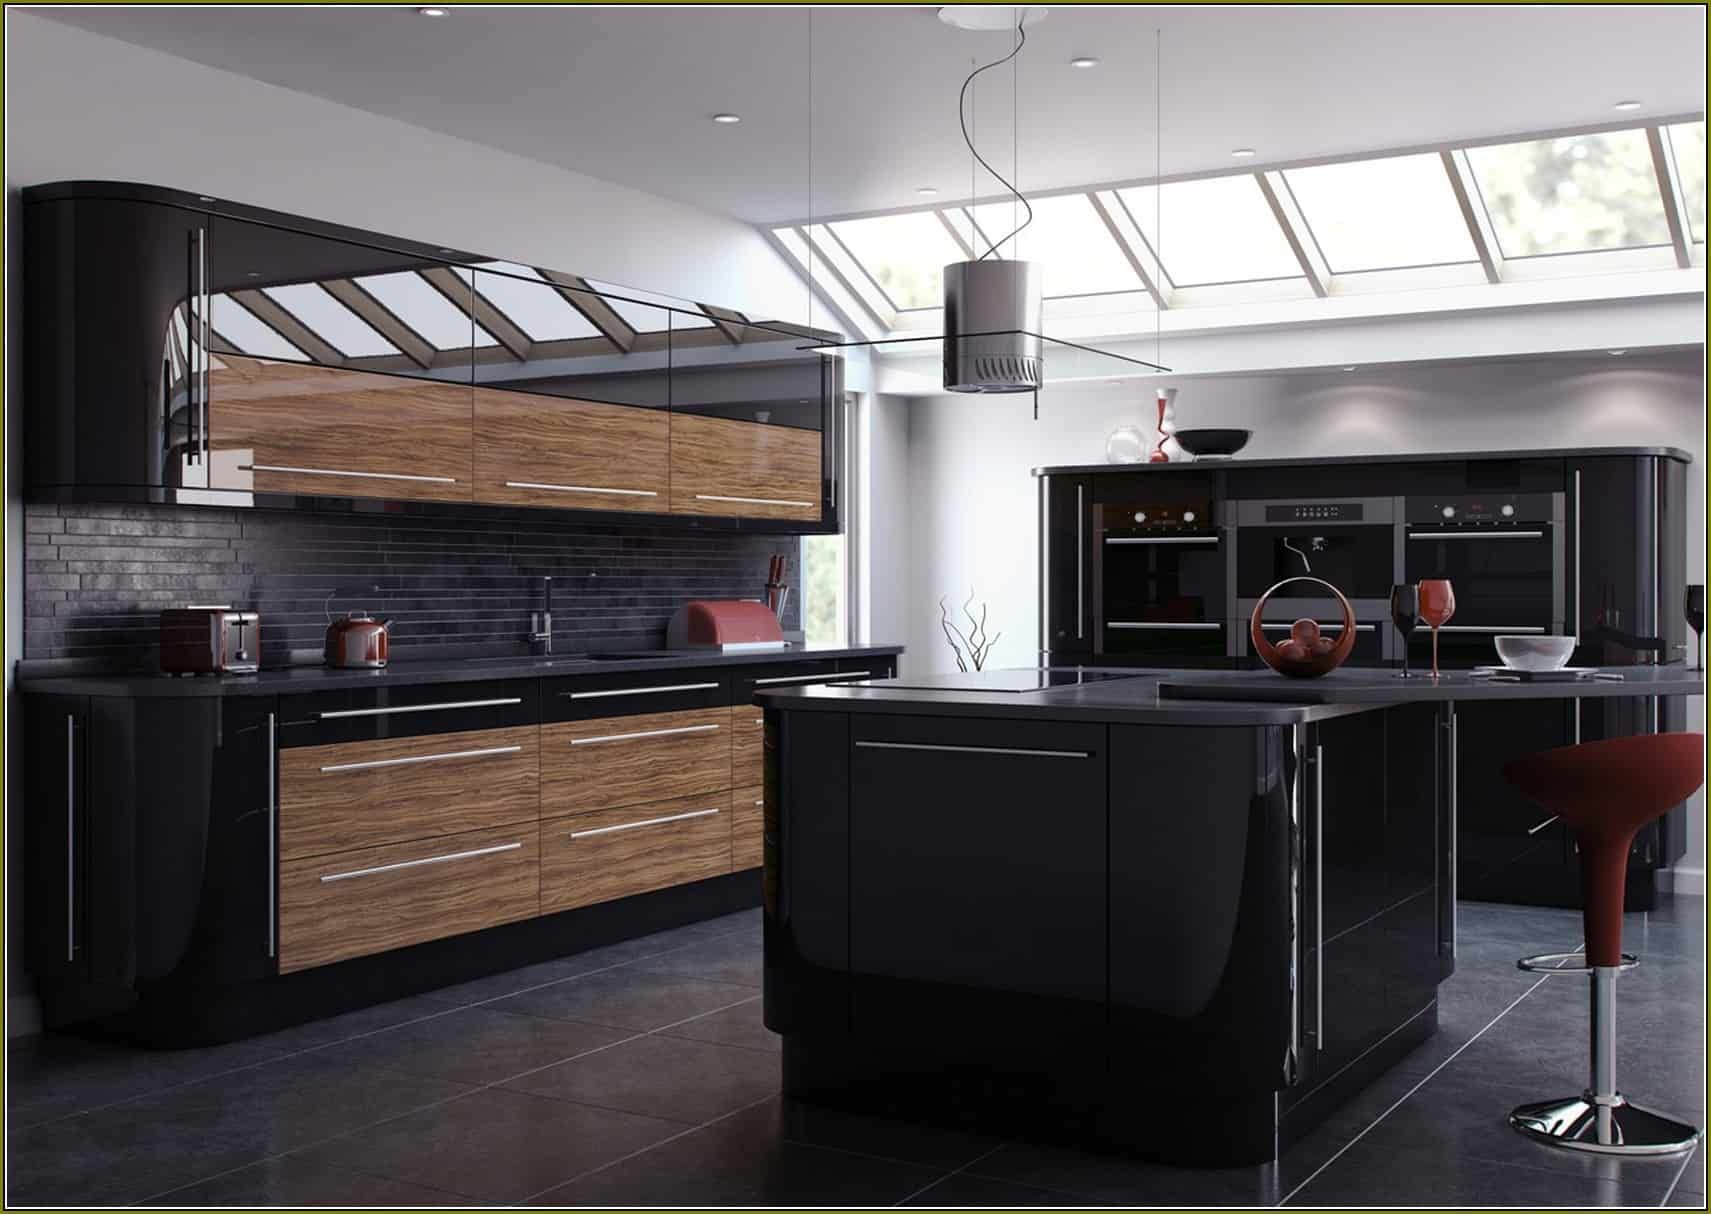 Outstanding Black And Wood Kitchens That Will Add Style To Your Home Homesthetics Inspiring Ideas For Your Home Modern Kitchen Design High Gloss Kitchen Cabinets High Gloss Kitchen Doors